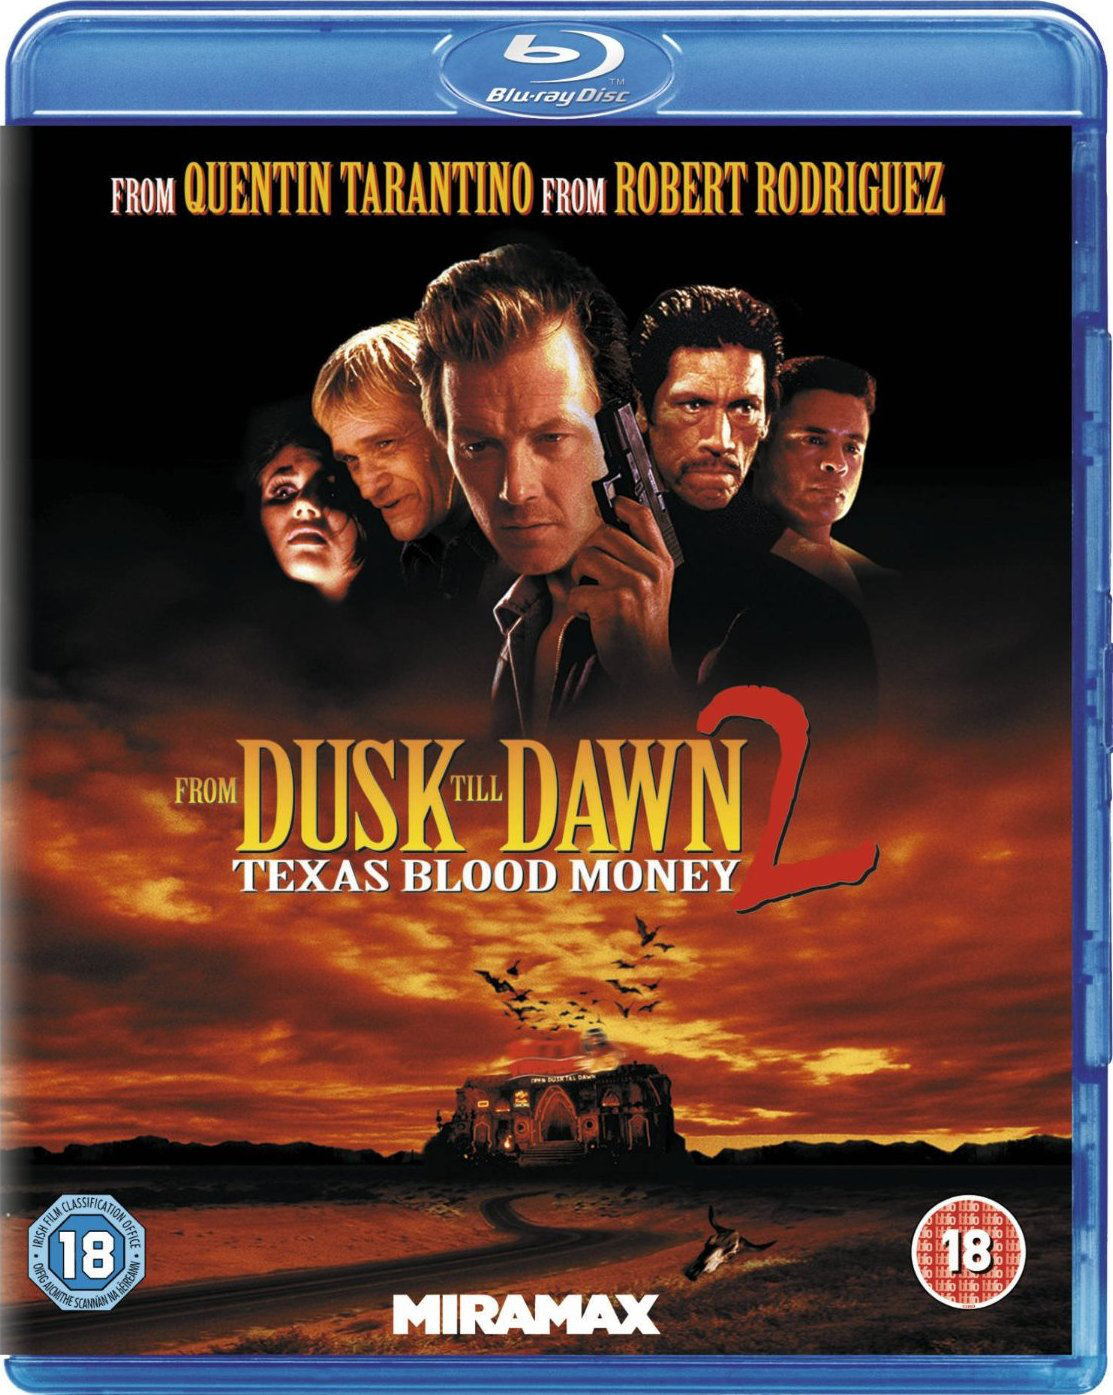 From Dusk Till Dawn 2 : Texas Blood Money